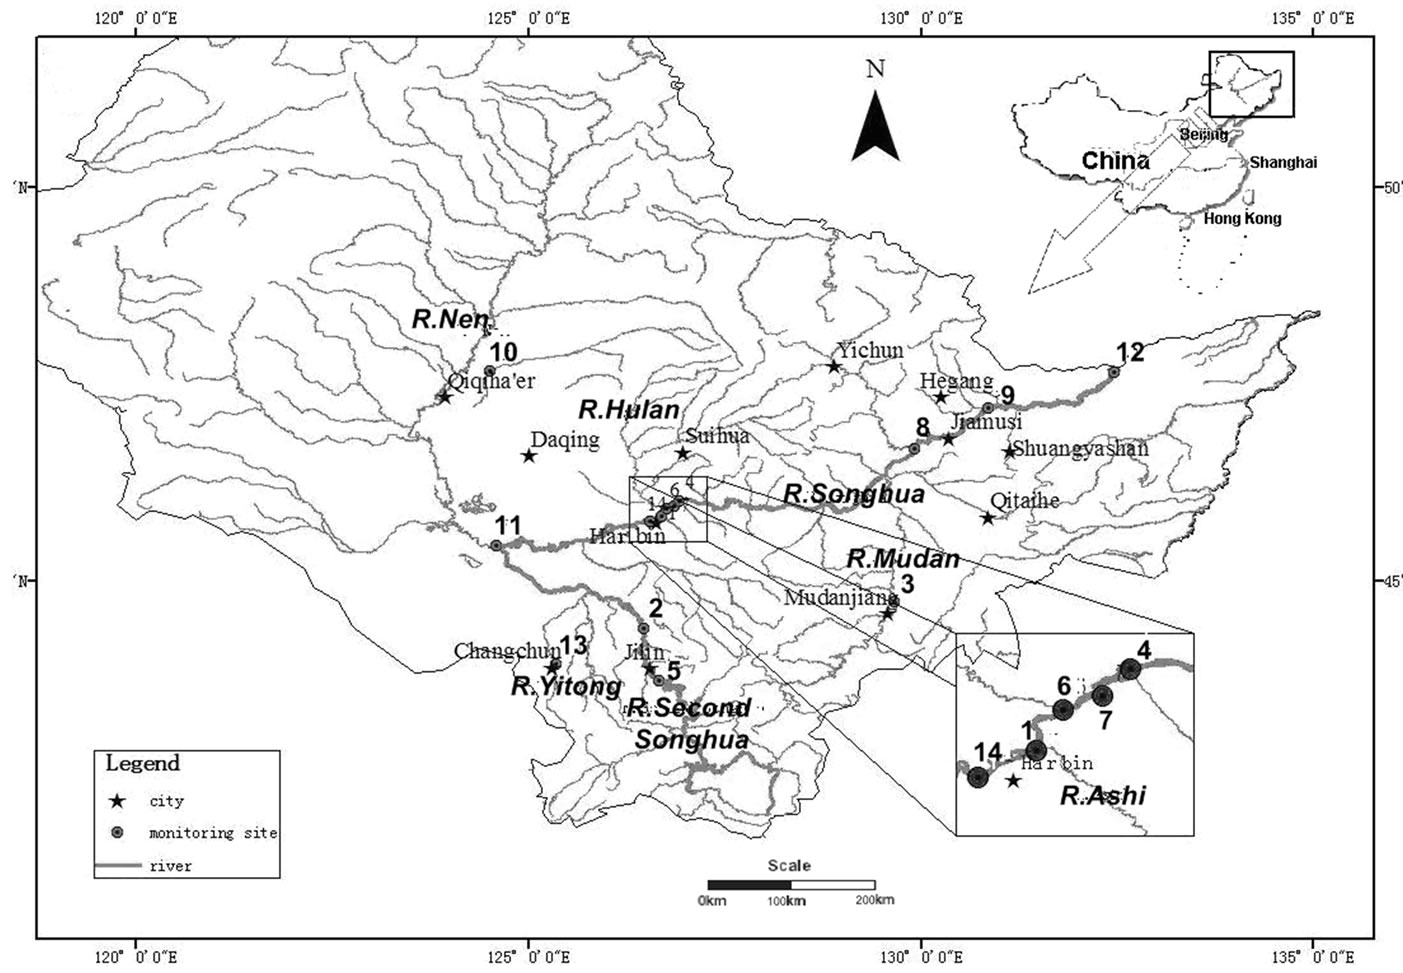 Water Qualityysis Of The Songhua River Basin Using Multivariate Techniques